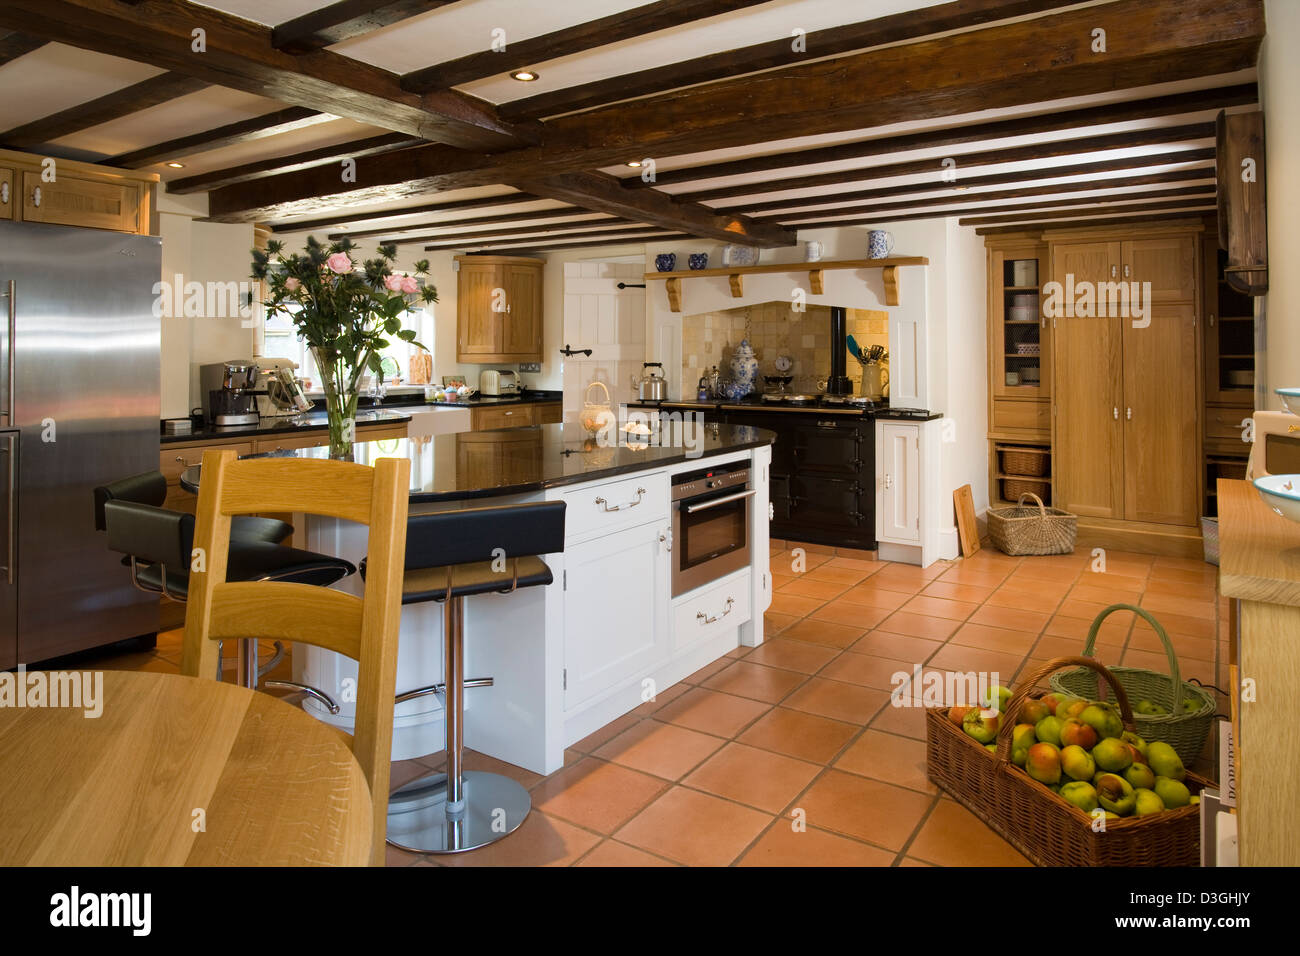 Uk A Contemporary Kitchen With An Island Unit Aga Cooker And Stock Photo Alamy